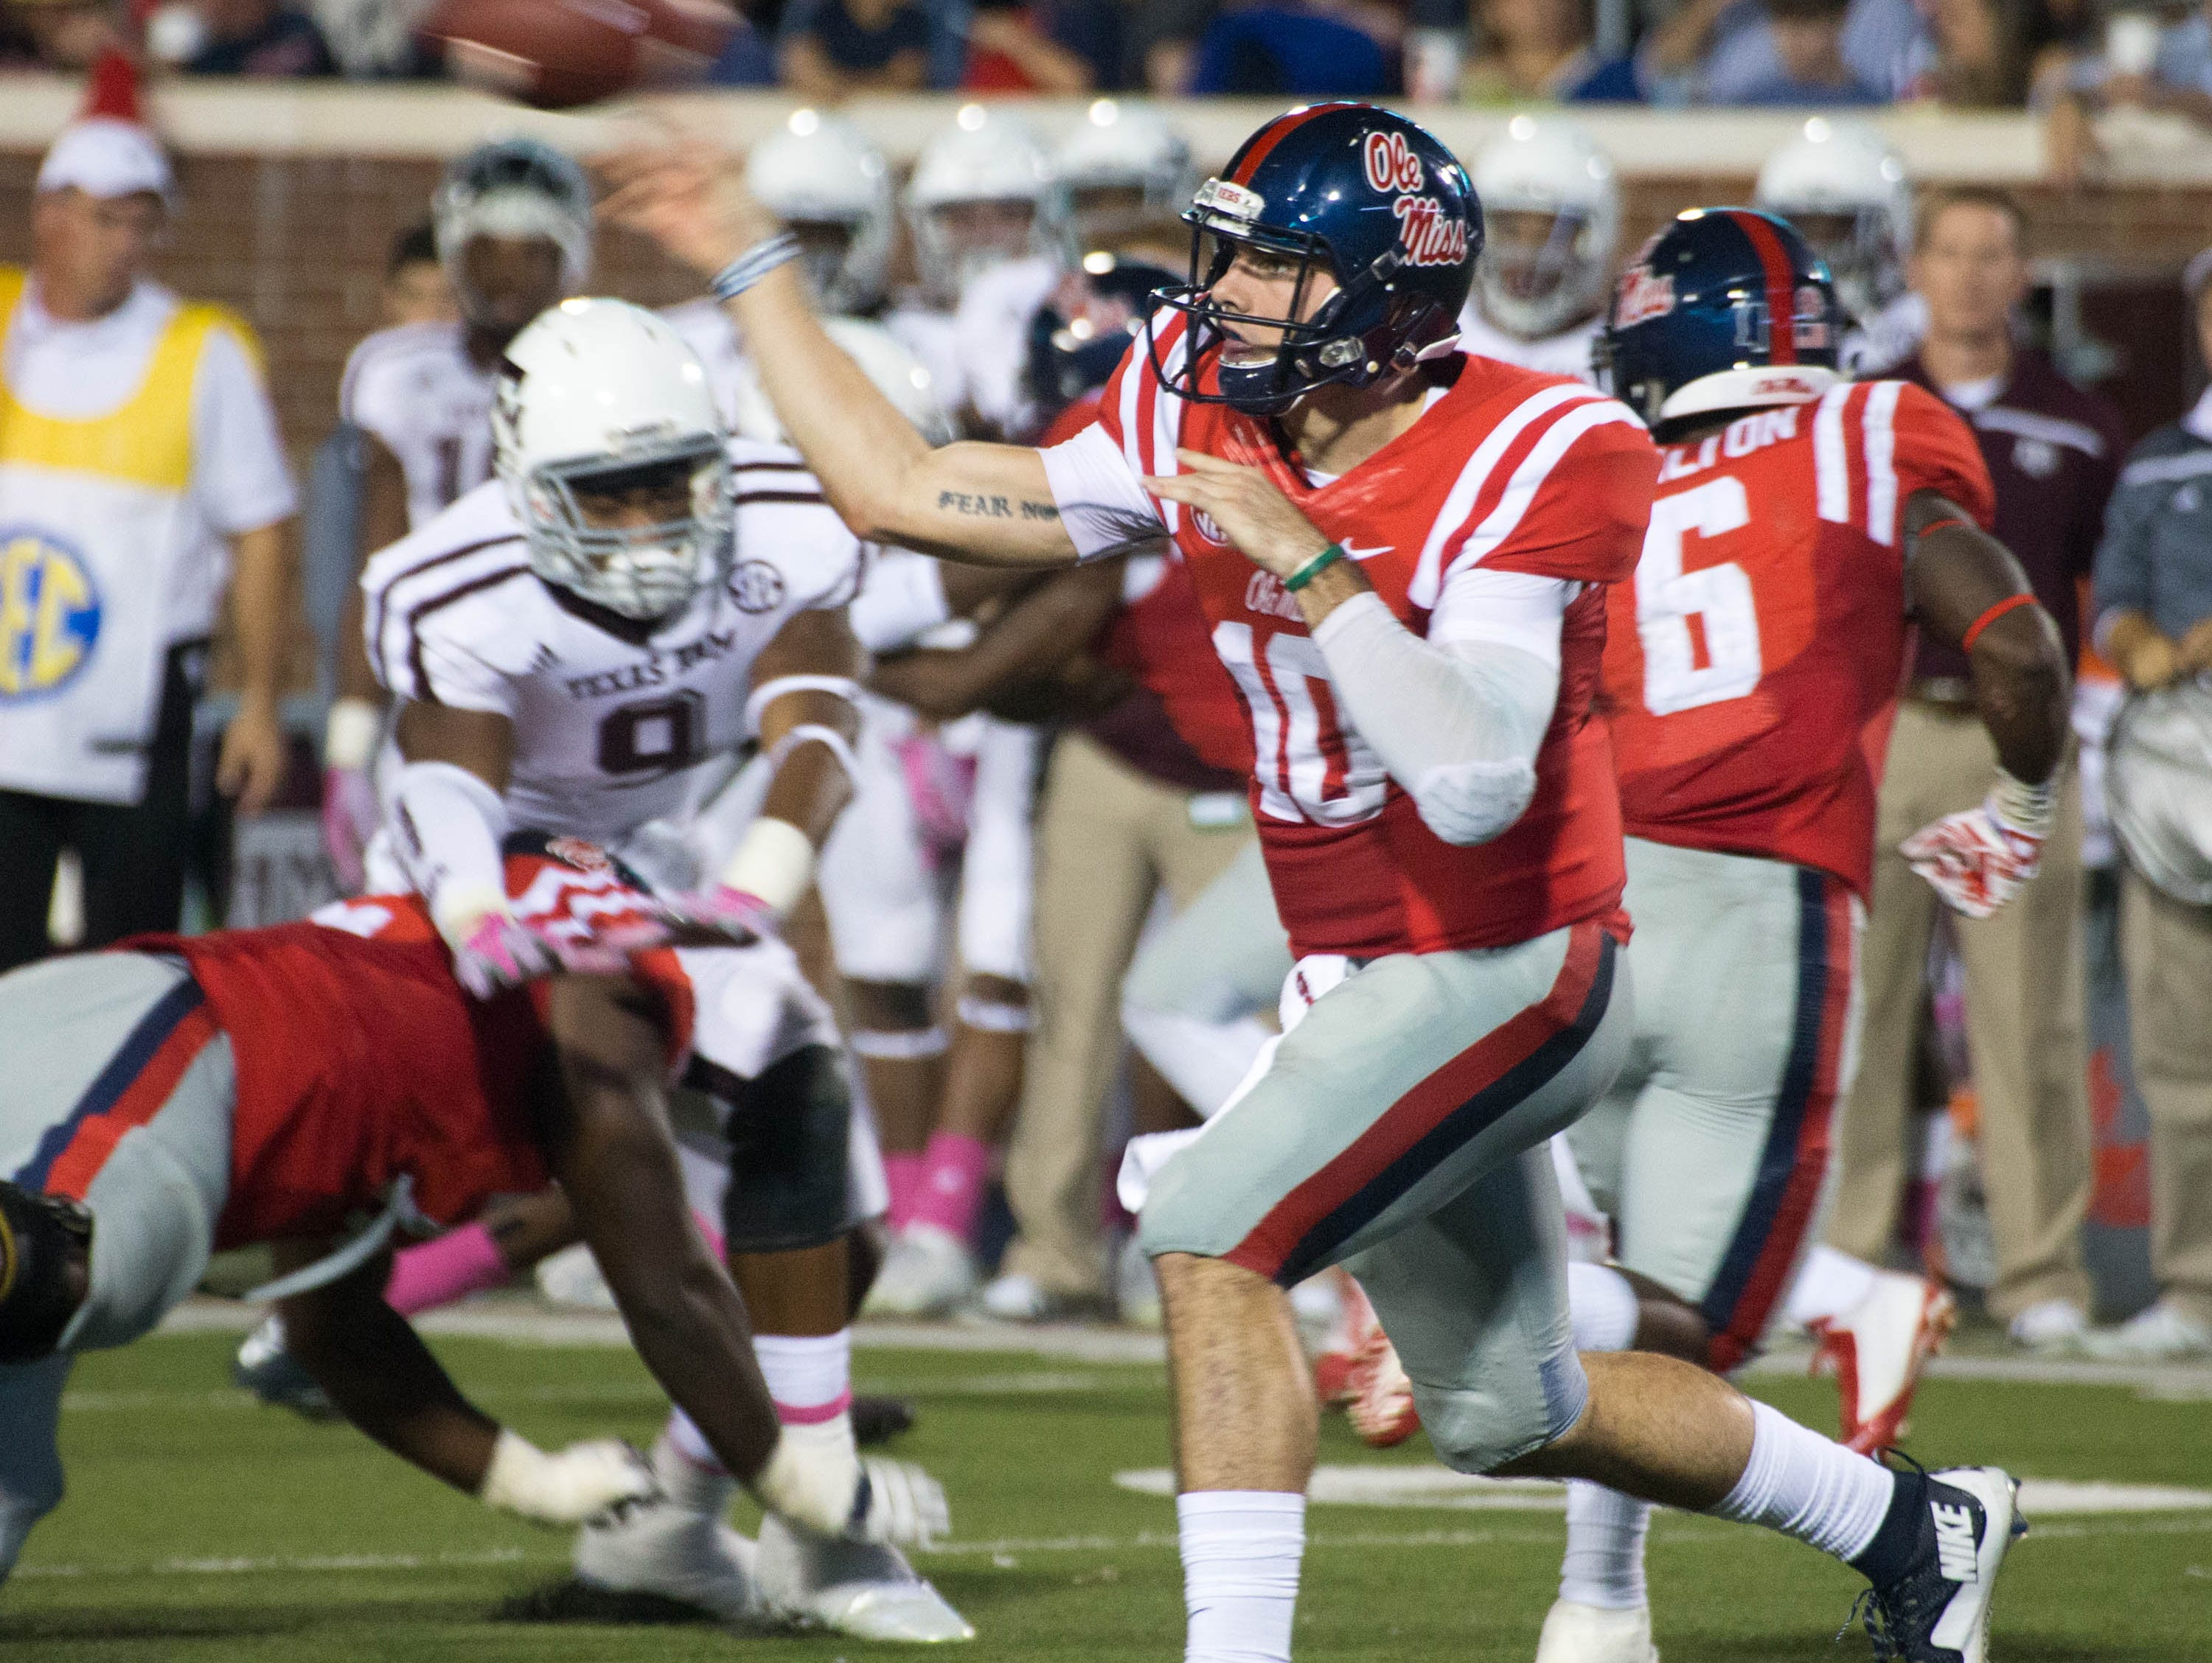 Chad Kelly throws the ball in the first half